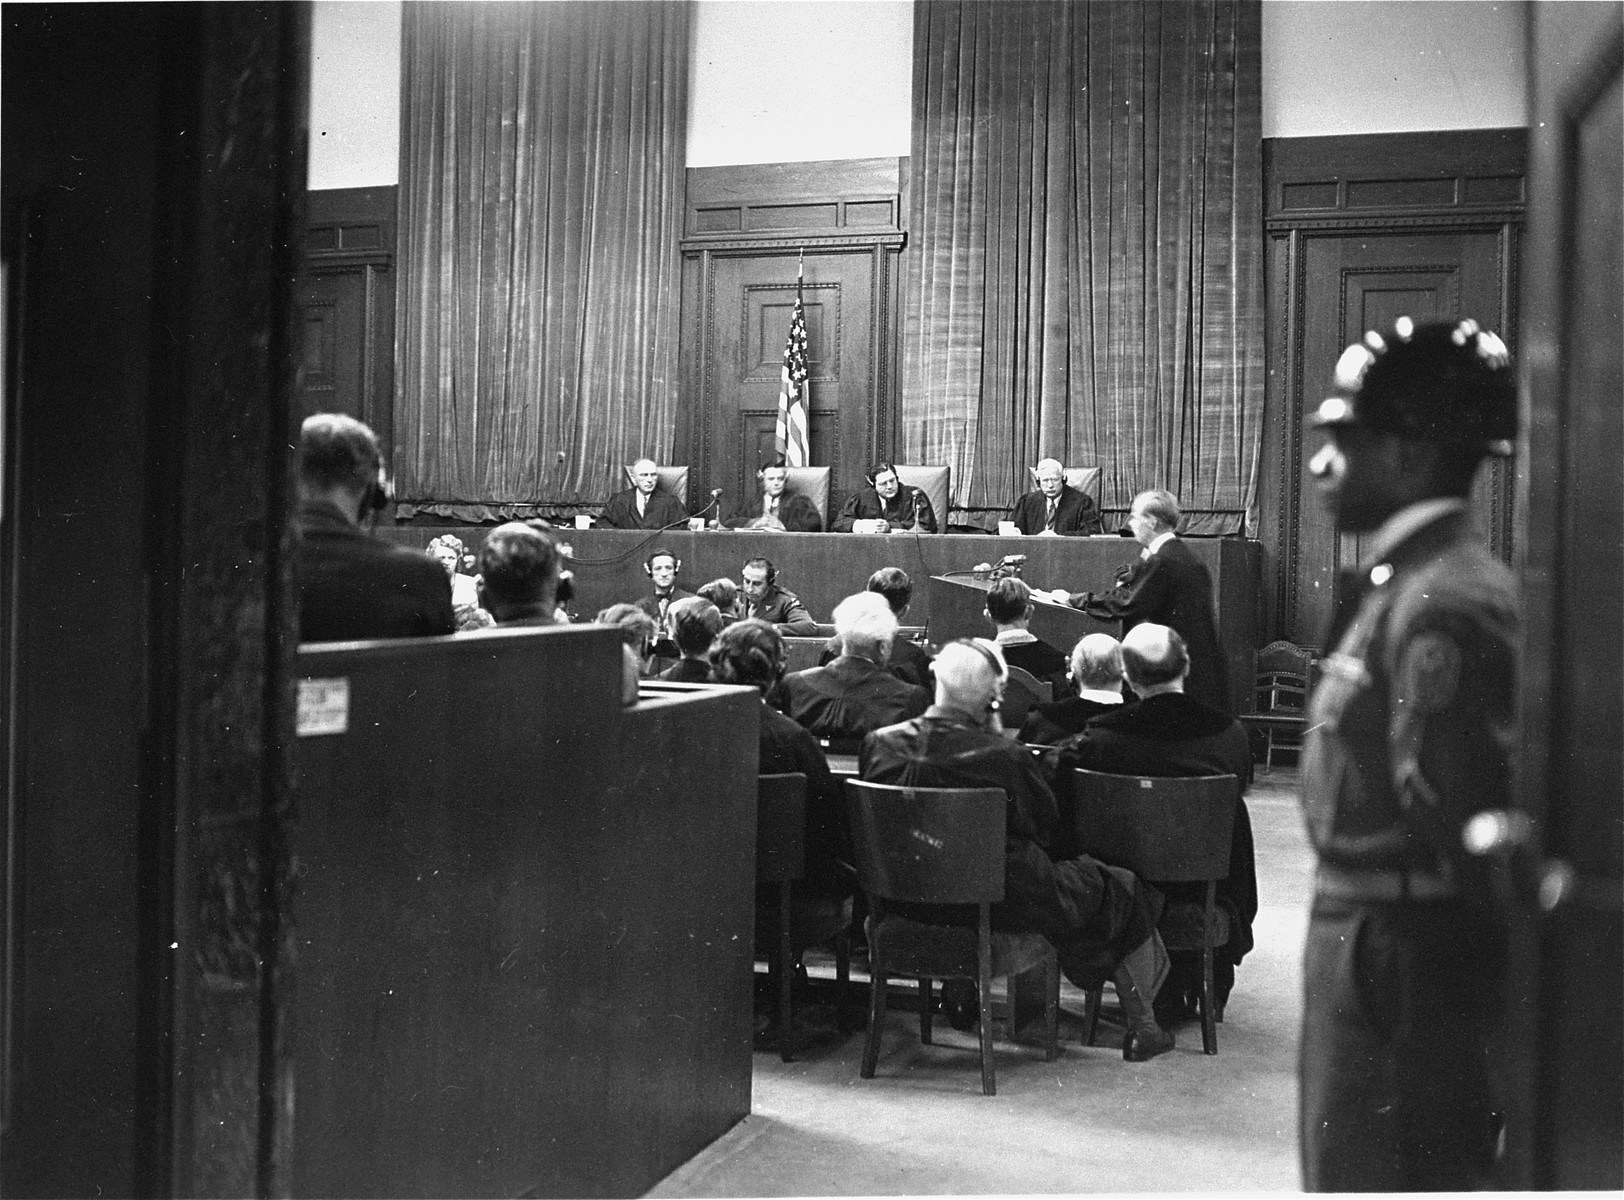 An American soldier guards the main entrance to the courtroom during the I.G. Farben Trial.  In the back sits the Military Tribunal VI.